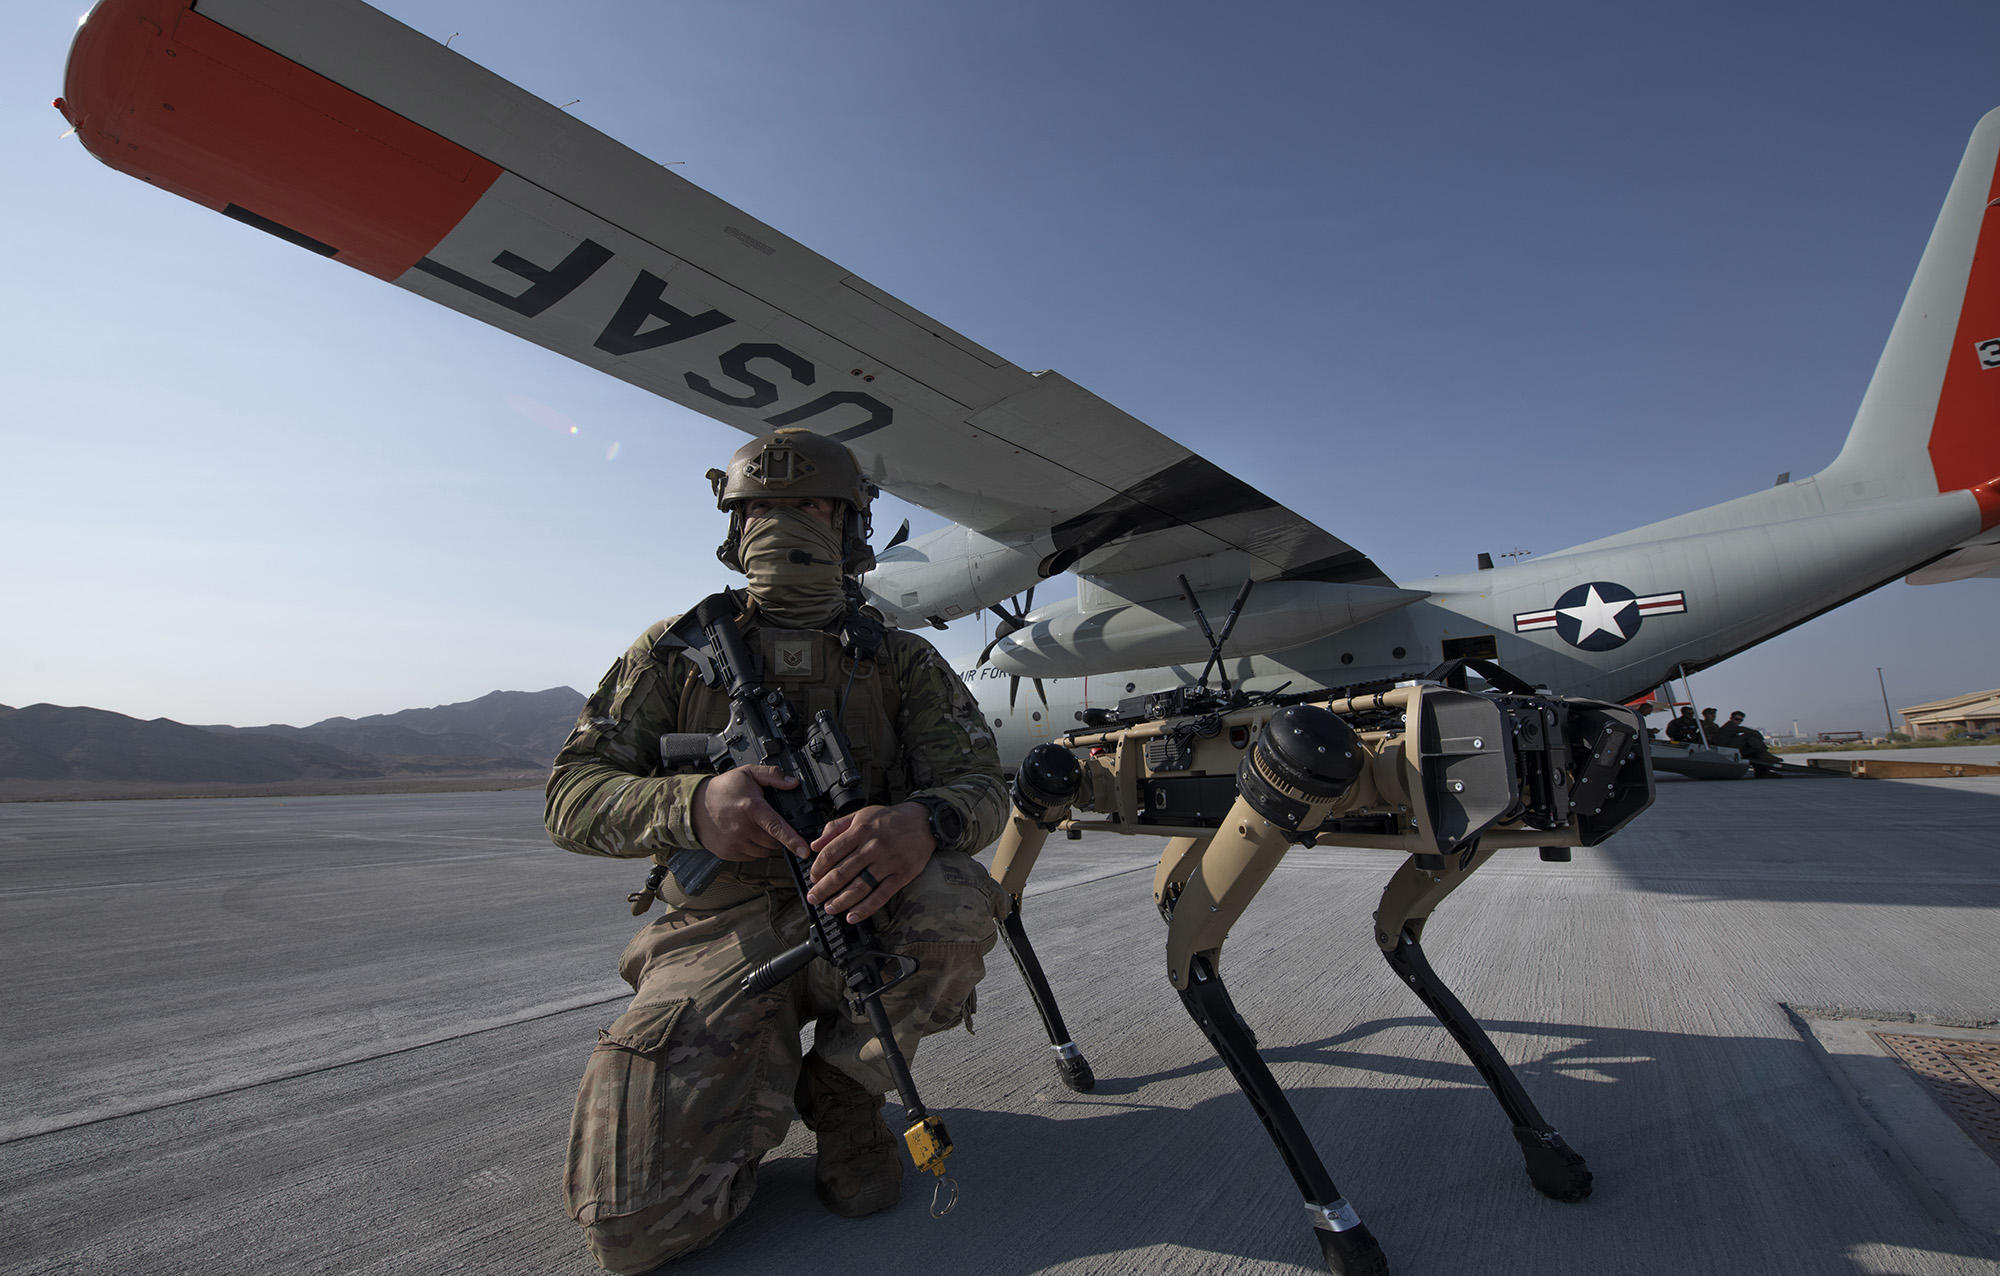 Tech. Sgt. John Rodiguez provides security with a Ghost Robotics Vision 60 prototype at a simulated austere base during the Advanced Battle Management System exercise on Nellis Air Force Base, Nev., Sept. 1, 2020. (Tech. Sgt. Cory D. Payne/Air Force)